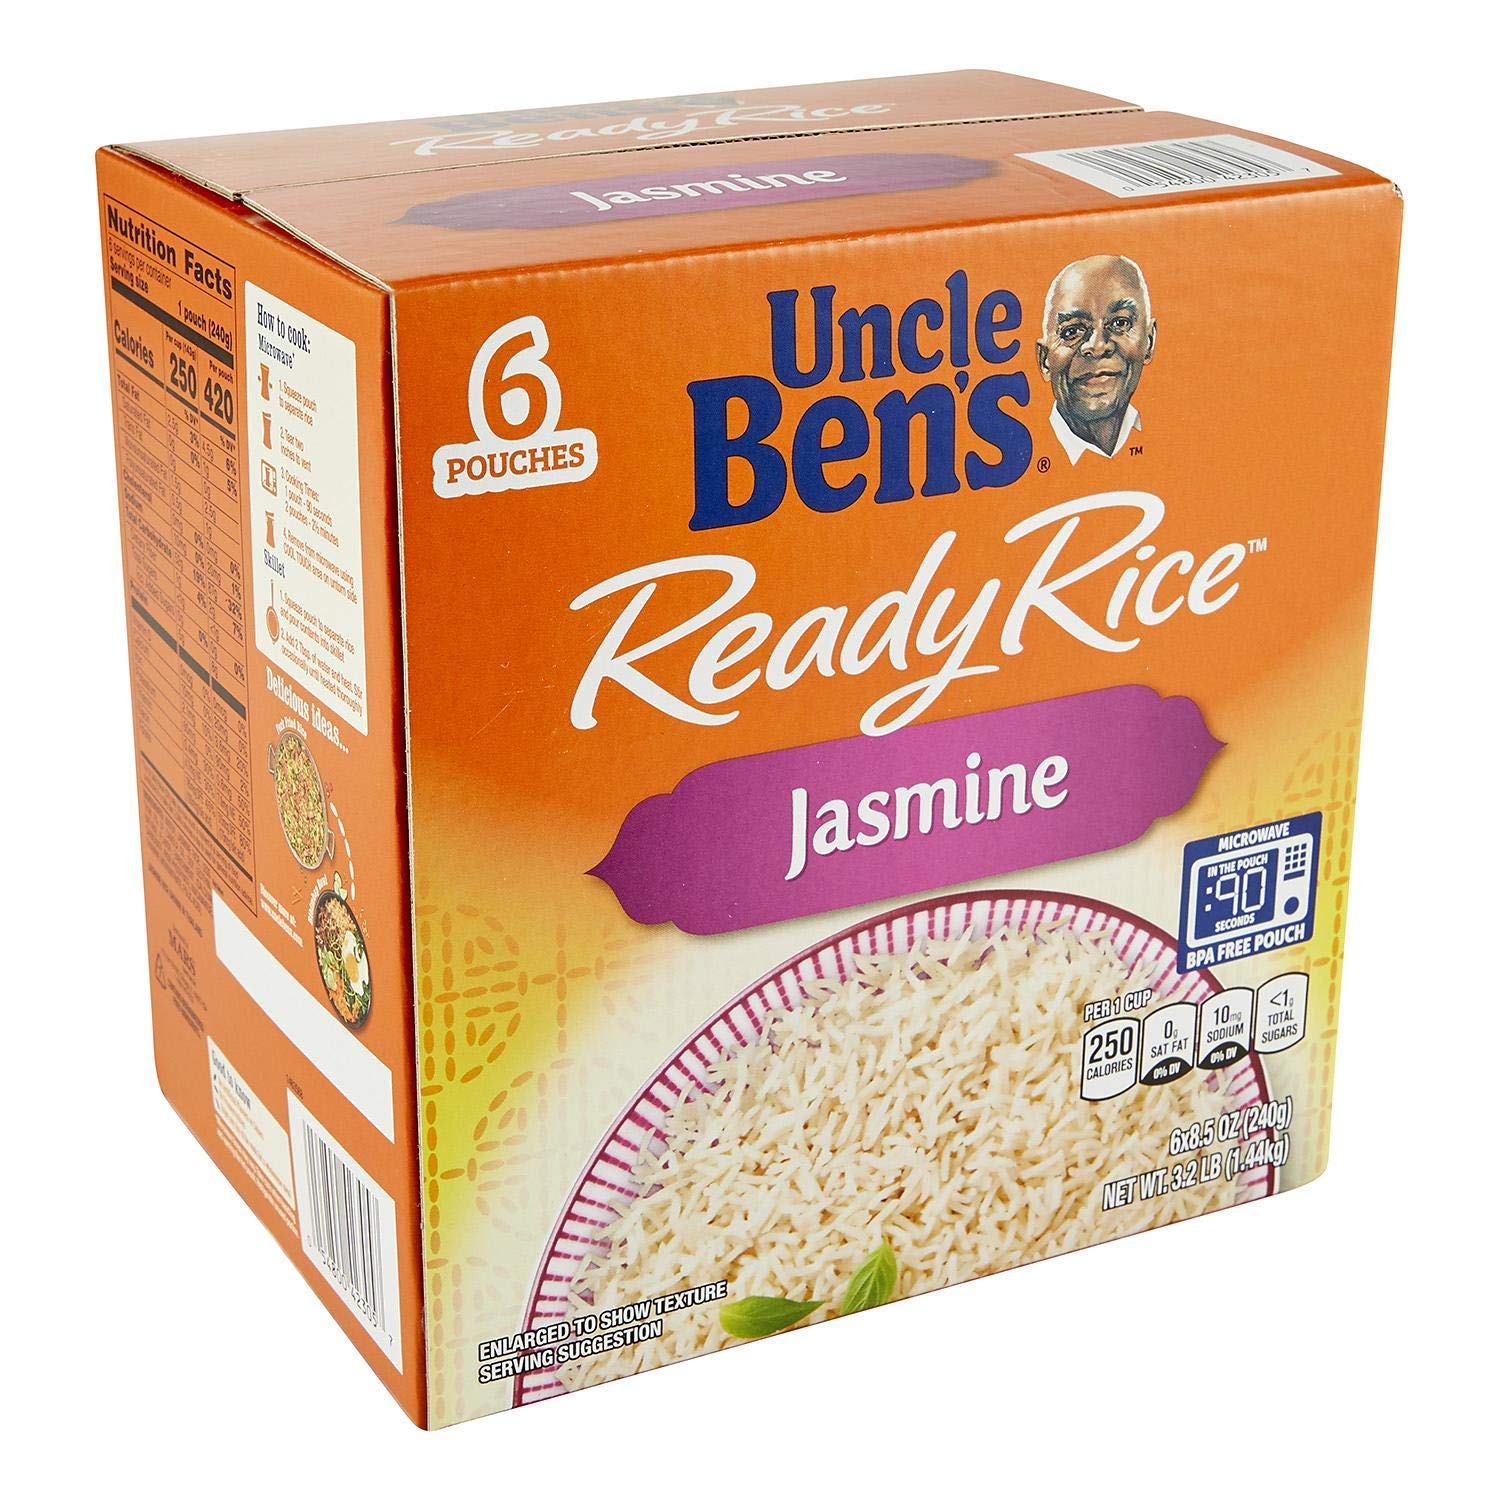 Uncle Bens Uncle Bens Jasmine Ready Rice 6 Pouches / 8.5 OunceNet Wt 51 Ounce , 51 Ounce